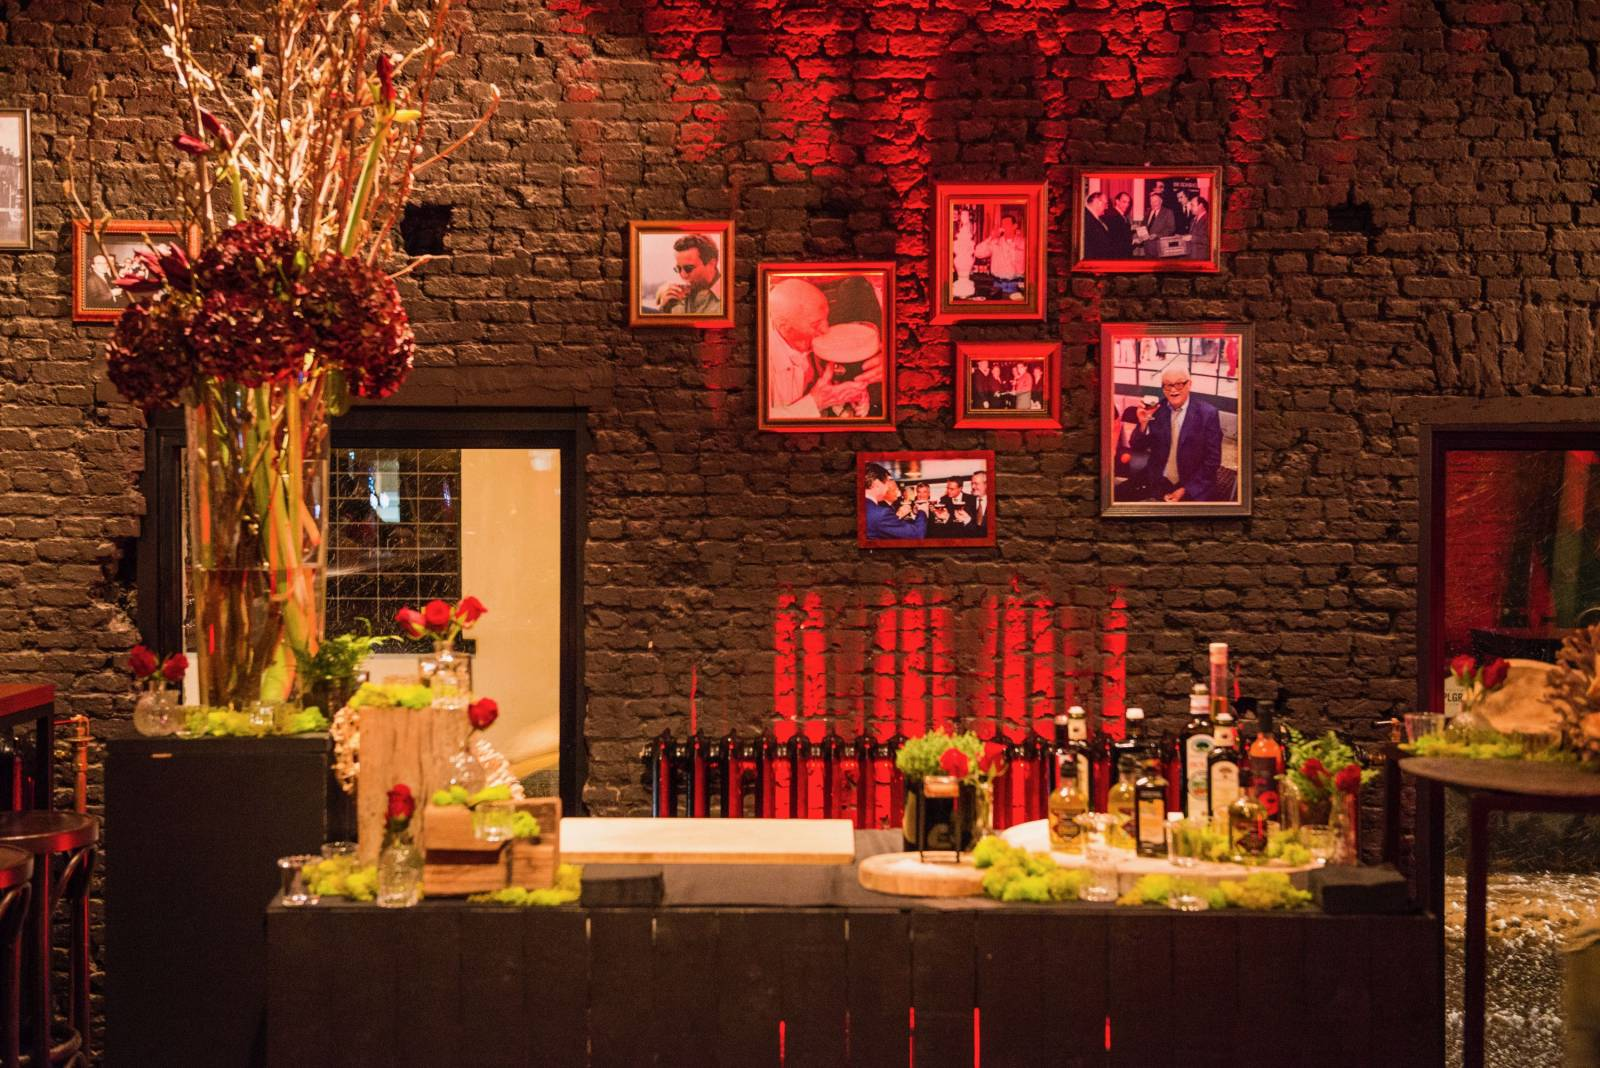 Brouwerij de Koninck - venue - House of Weddings - 1